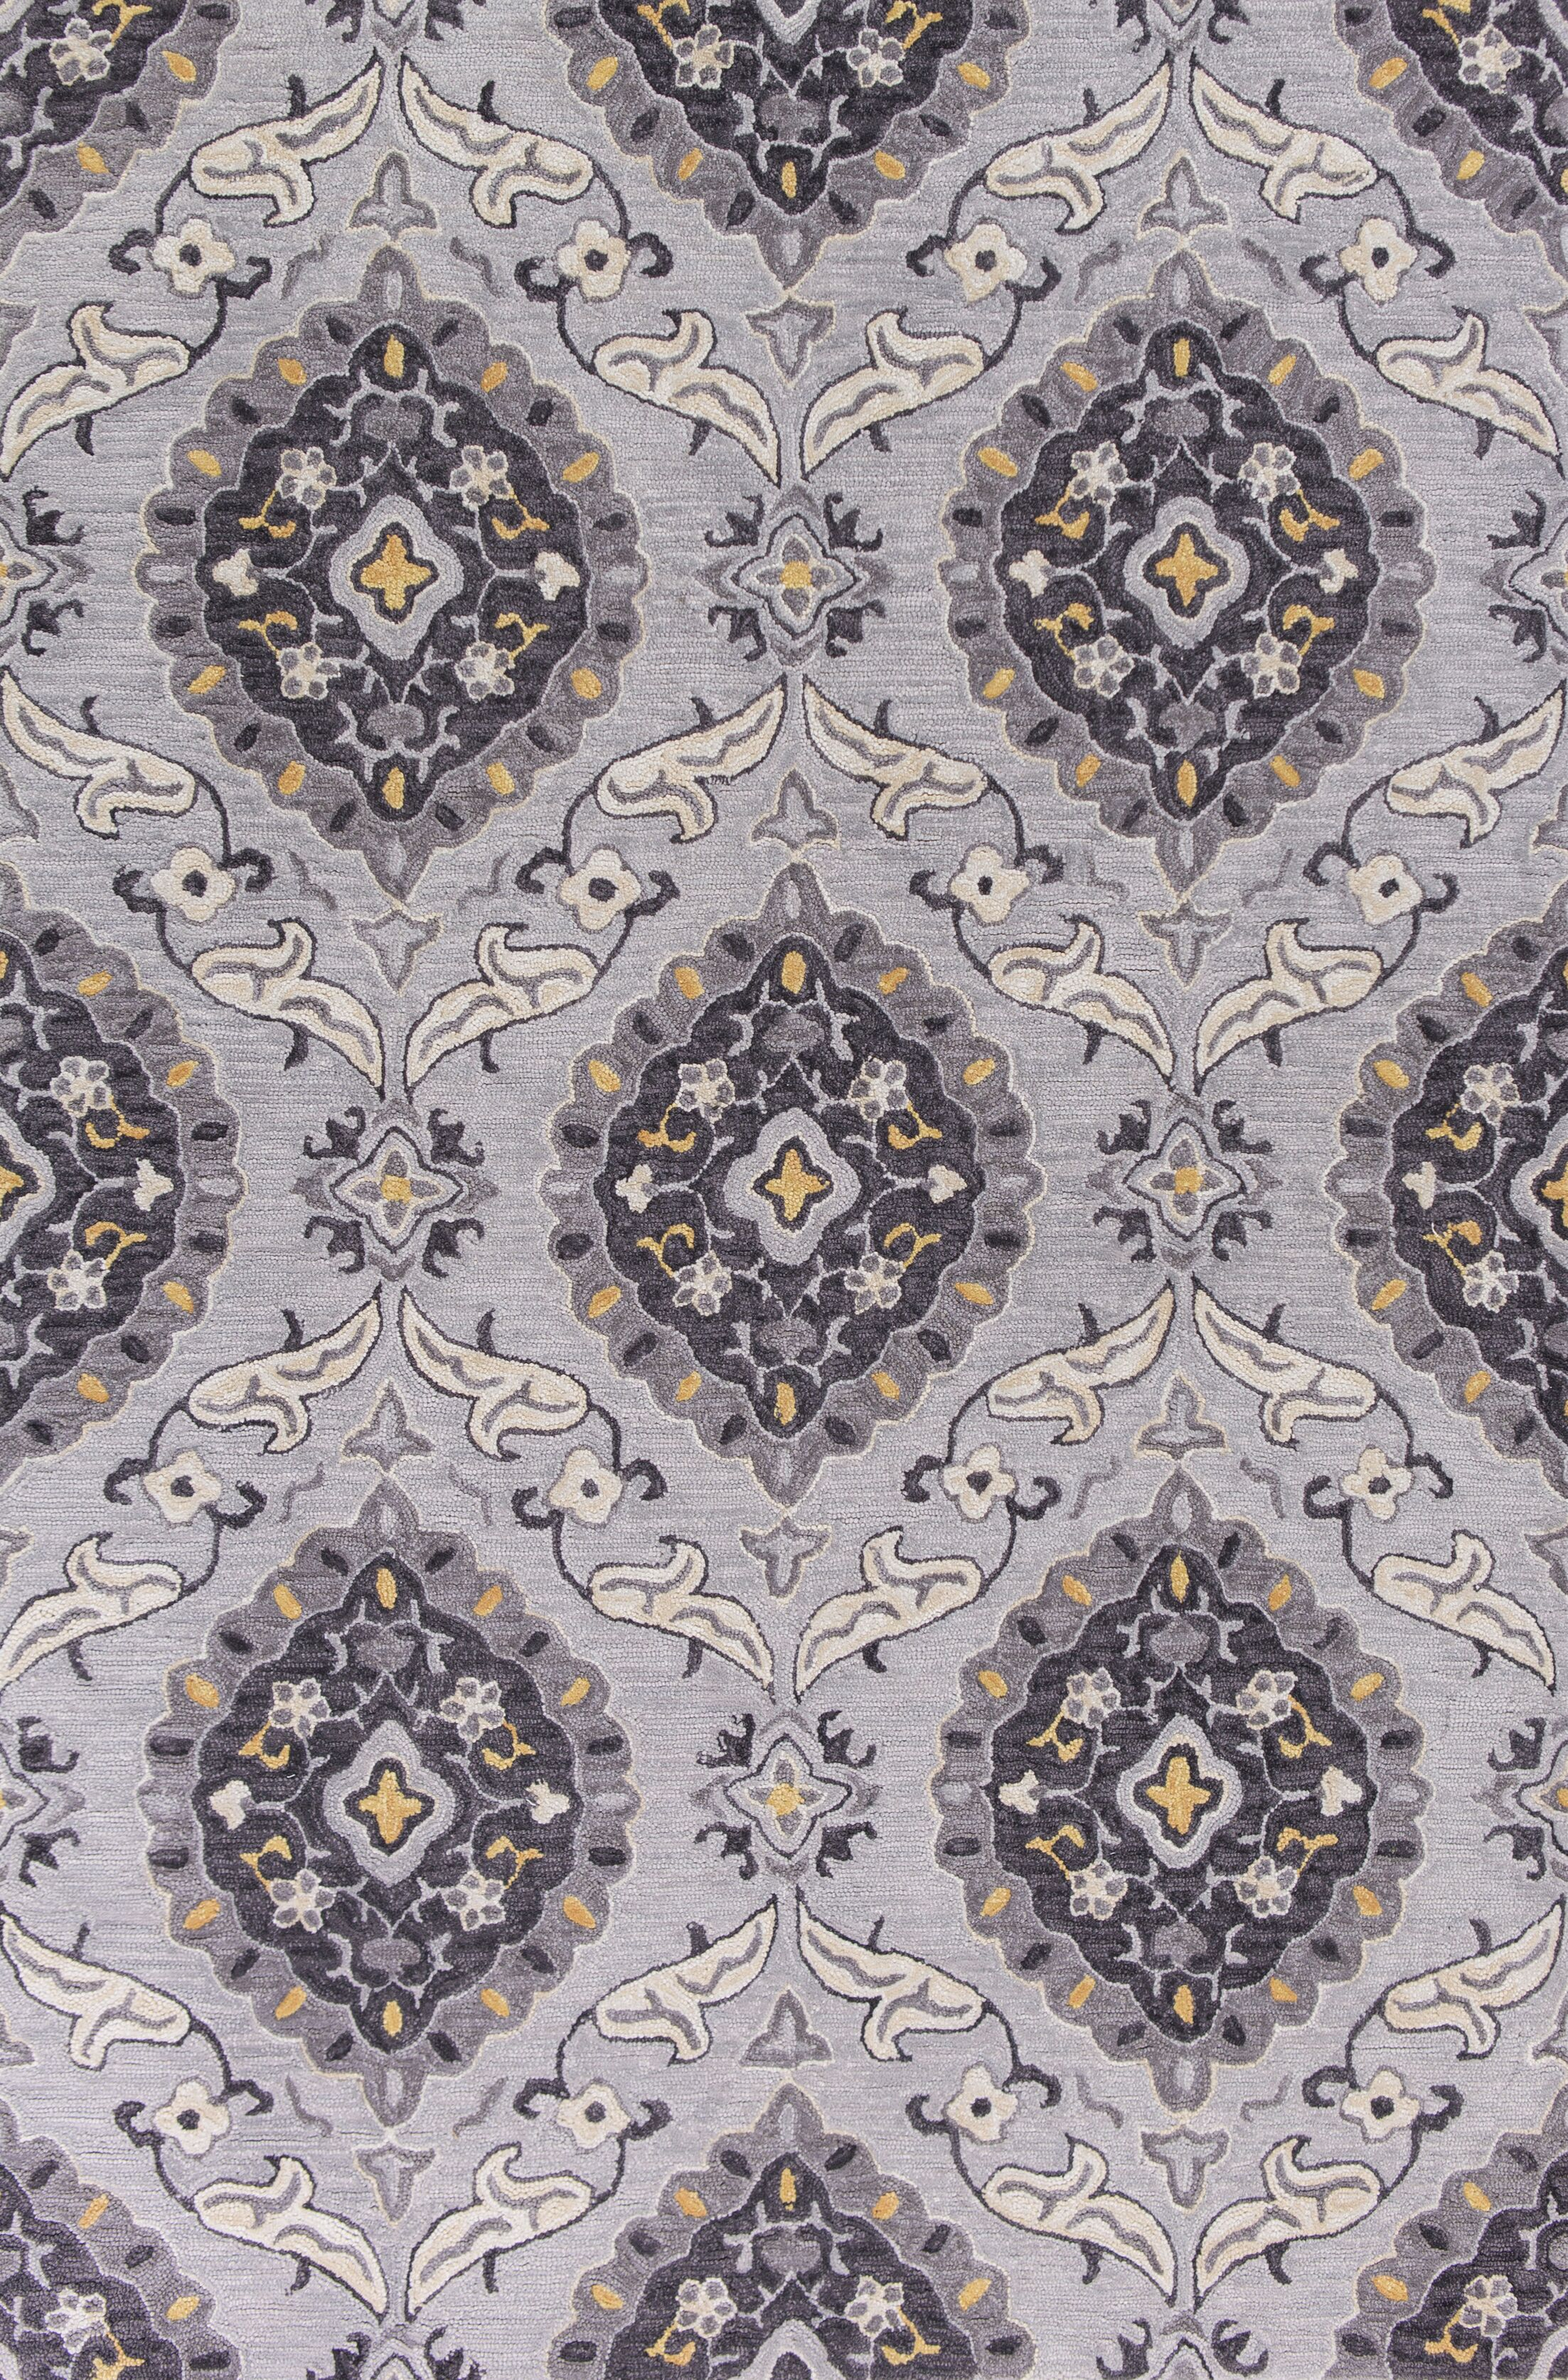 Guillory Hand-Hooked Gray/Yellow Area Rug Rug Size: Rectangle 5' x 7'6